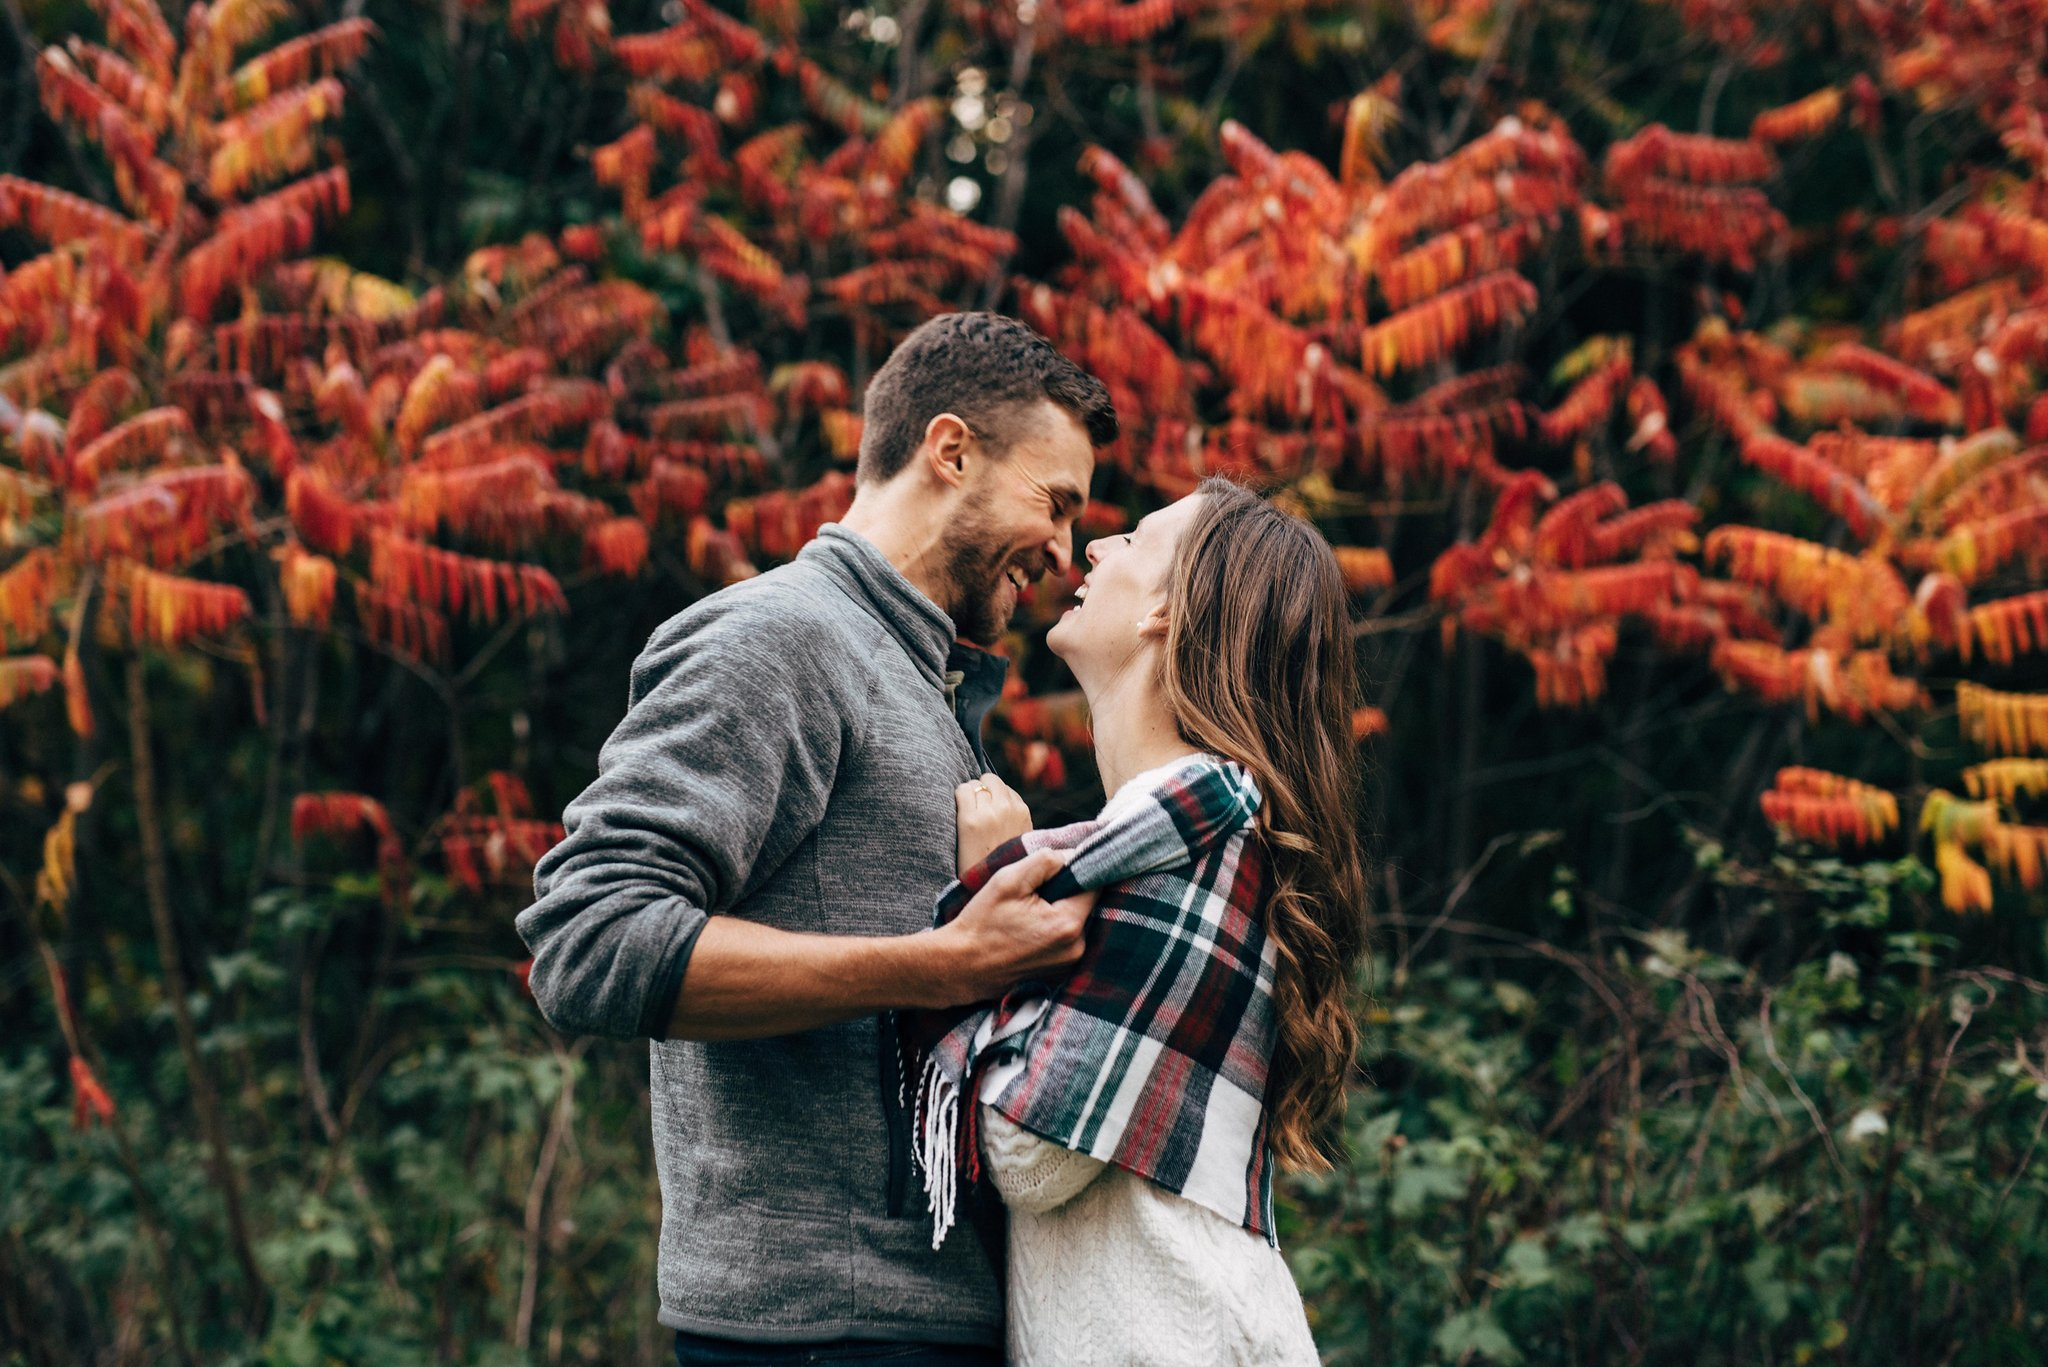 Fall scarf engagement photos | Olive Photography Toronto